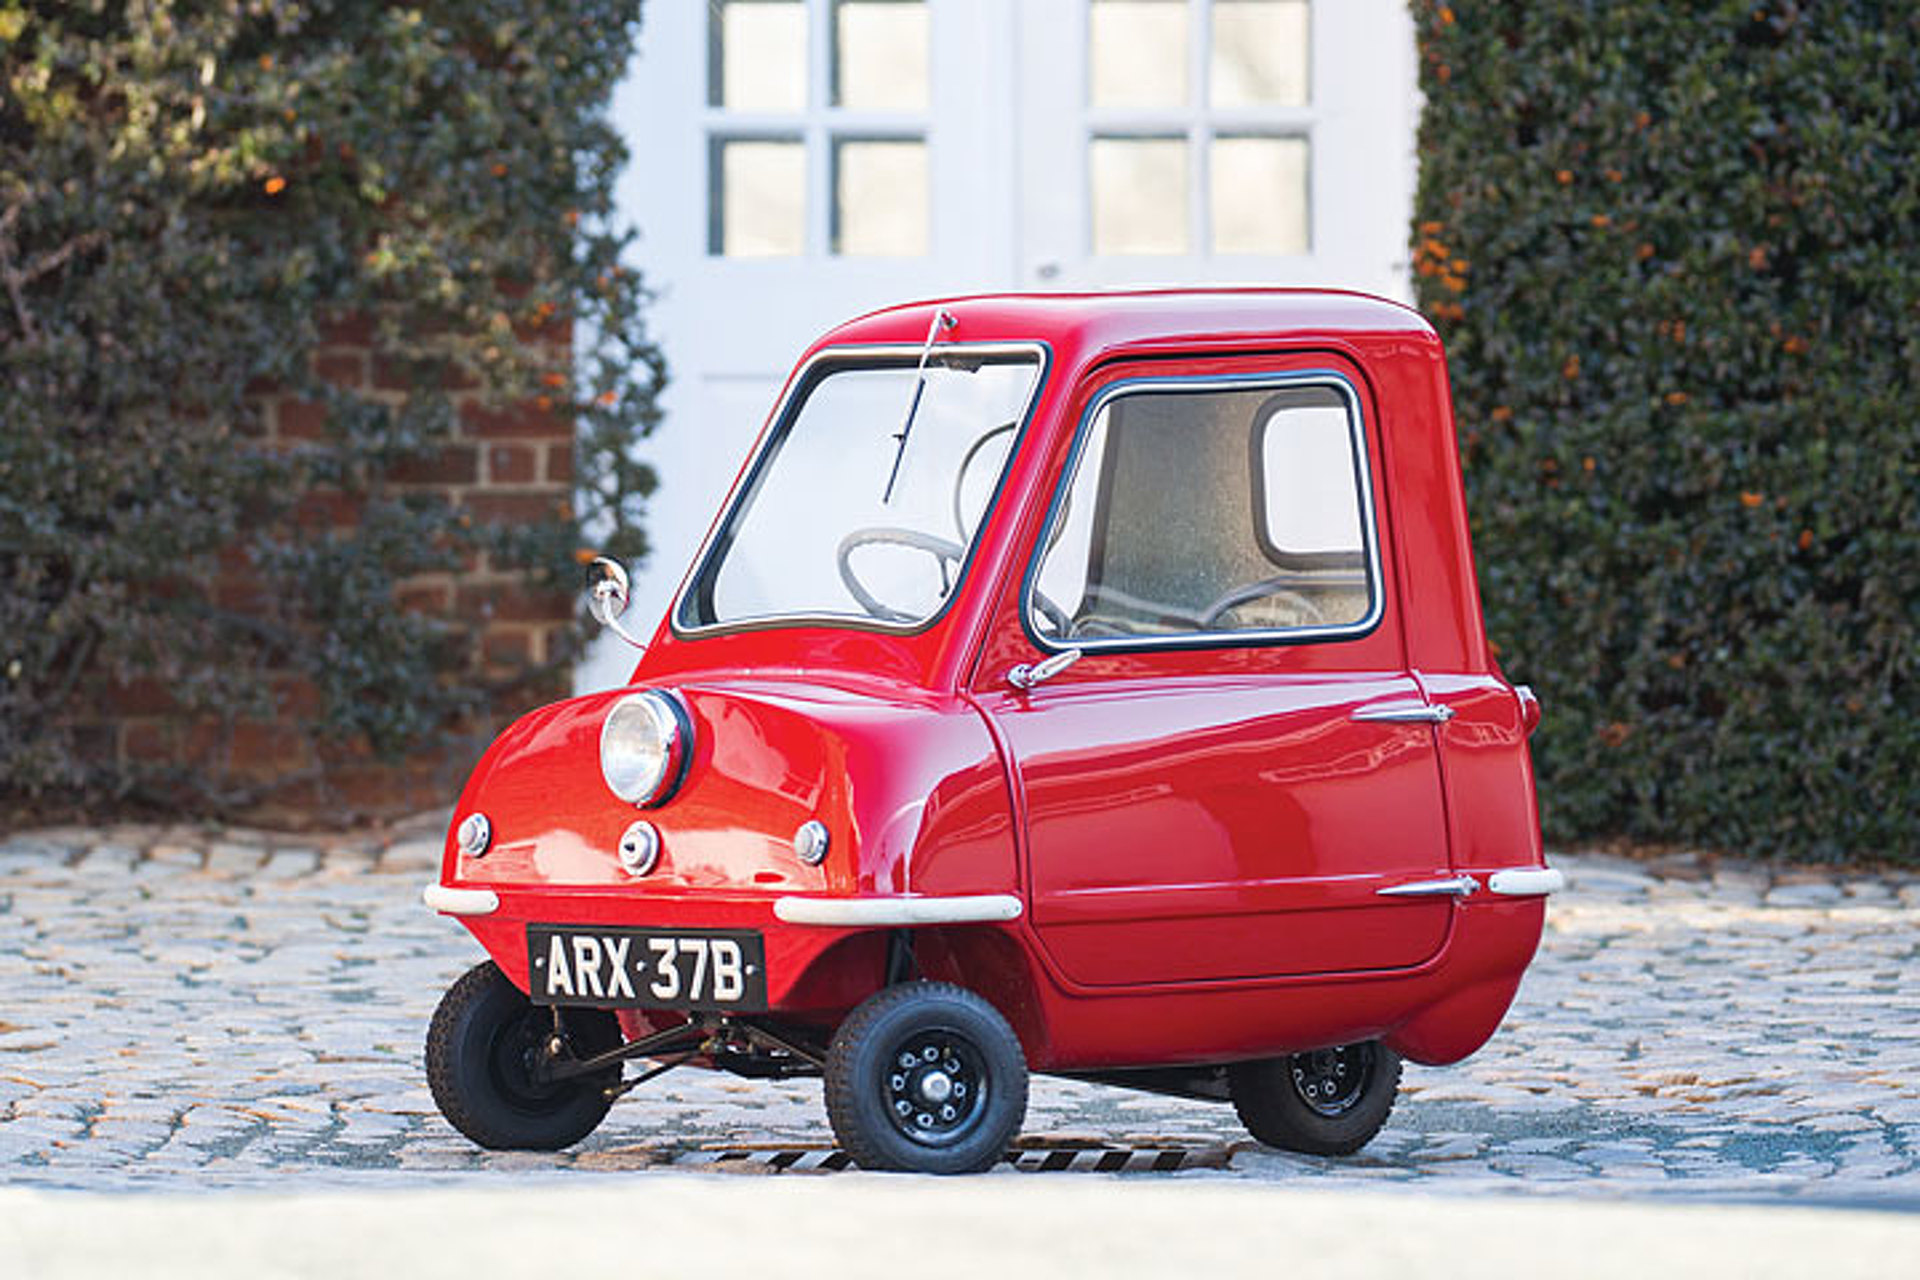 The Smallest Car In The World >> The Smallest Car In The World Isn T All That Cheap